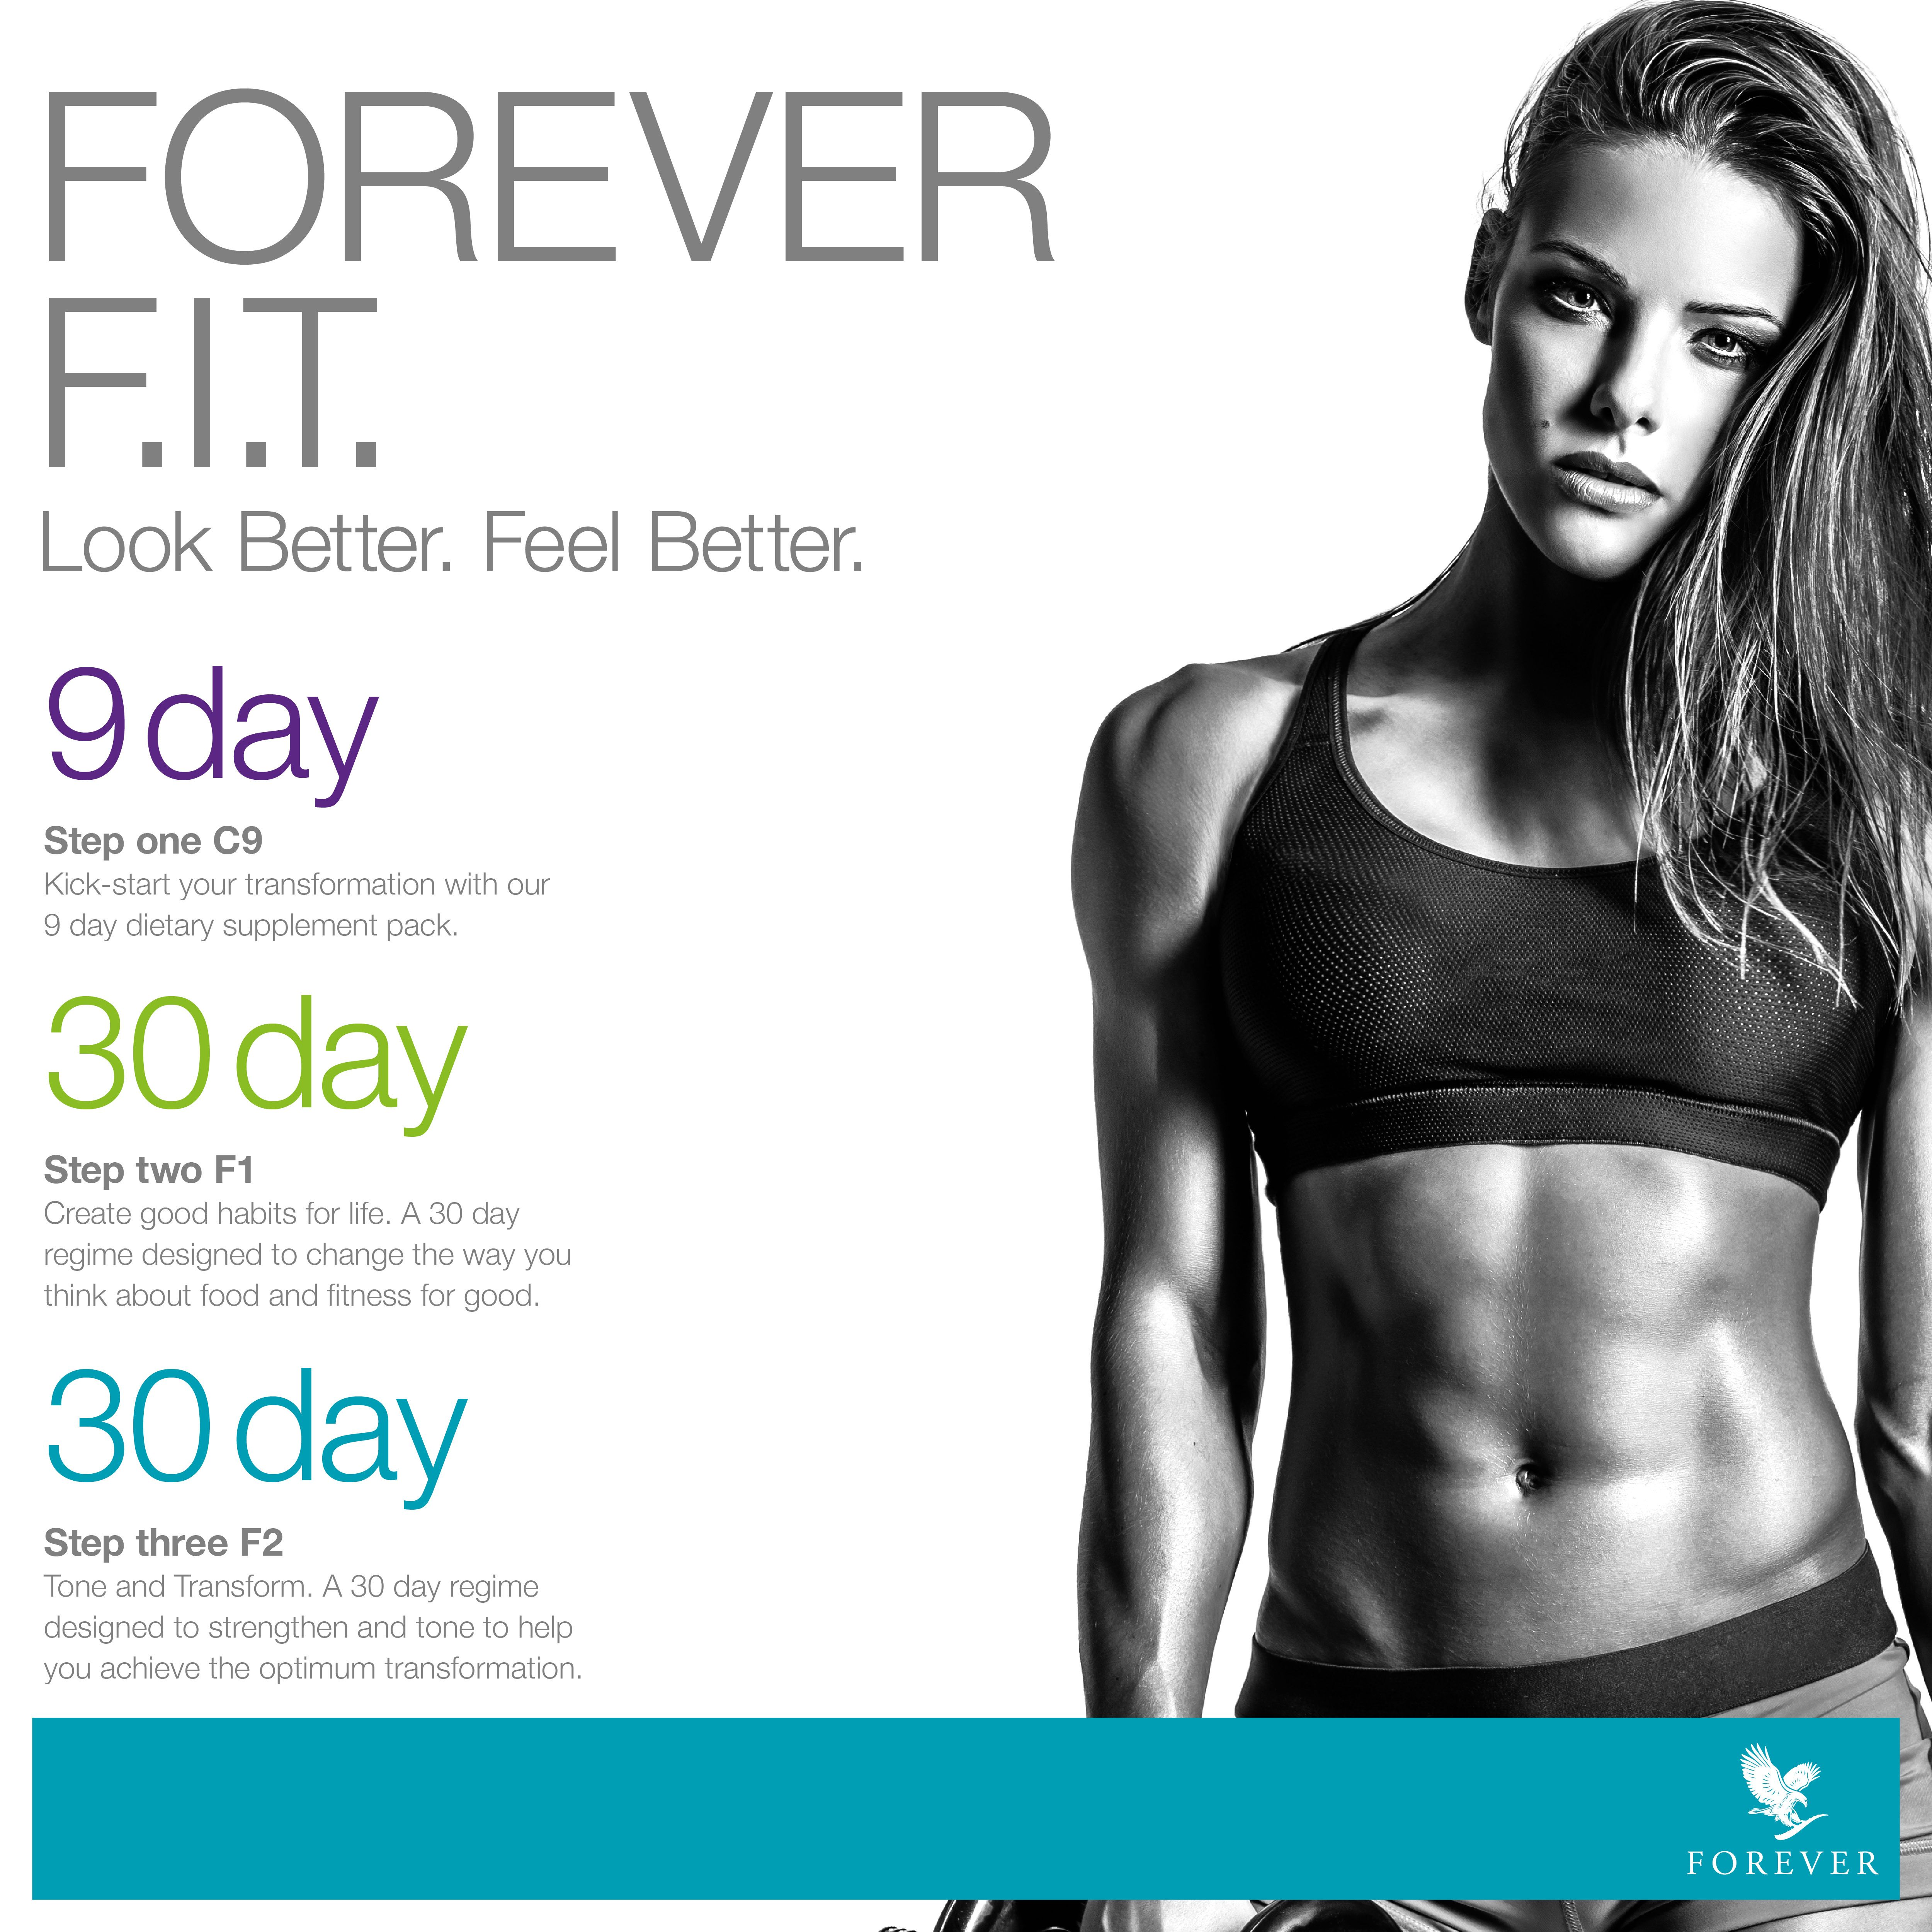 The Clean 9 program can help you to jumpstart your journey to a slimmer, healthier you. This effective, easy-to-follow cleansing program will give you the tools you need to start transforming your body today!